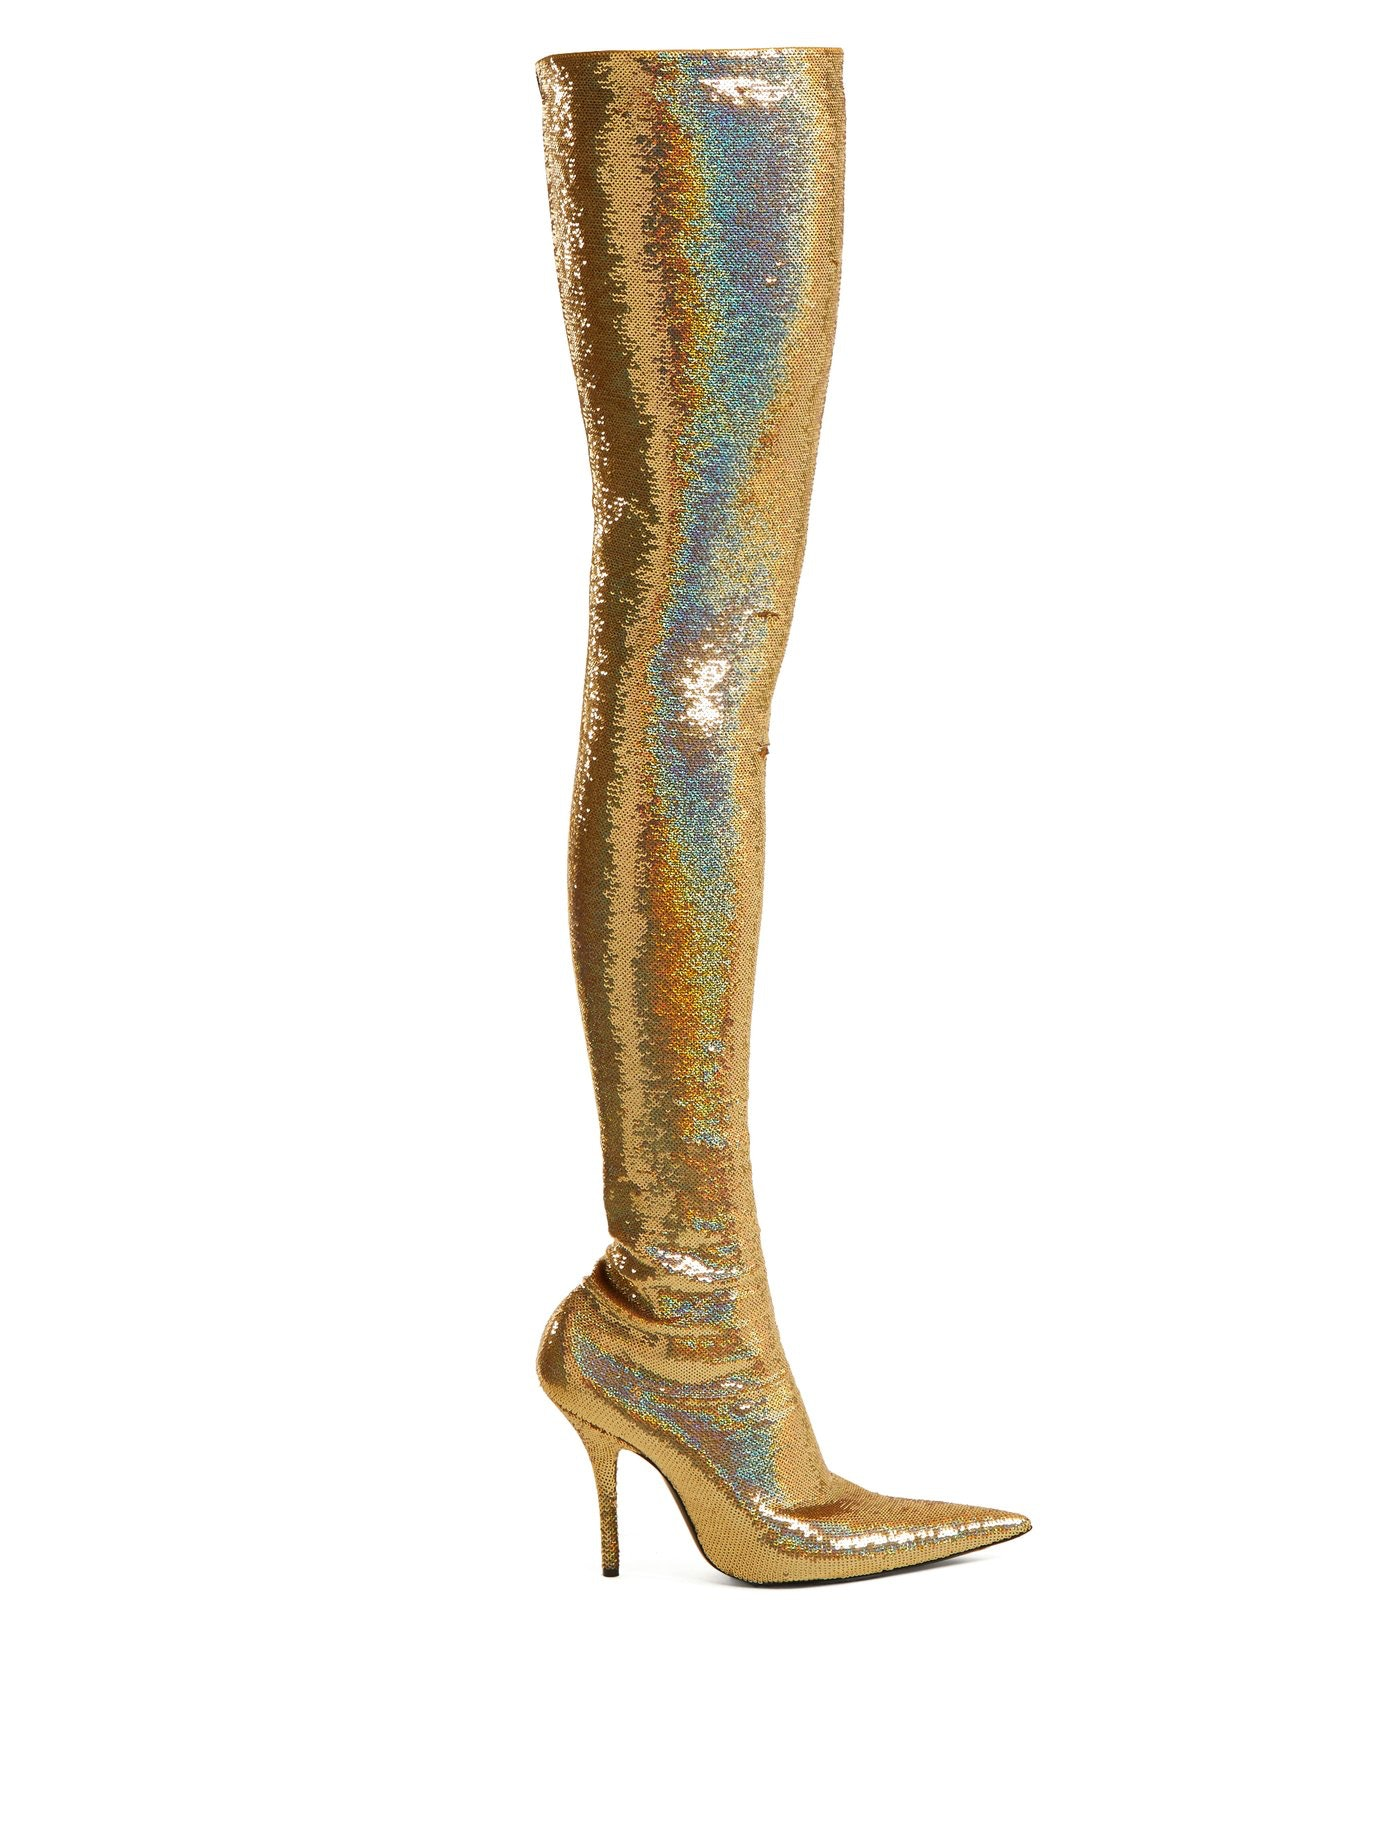 3963e8f52c6 Michelle Obama s Thigh-High Gold Boots Are A Bold Addition To Her Closet